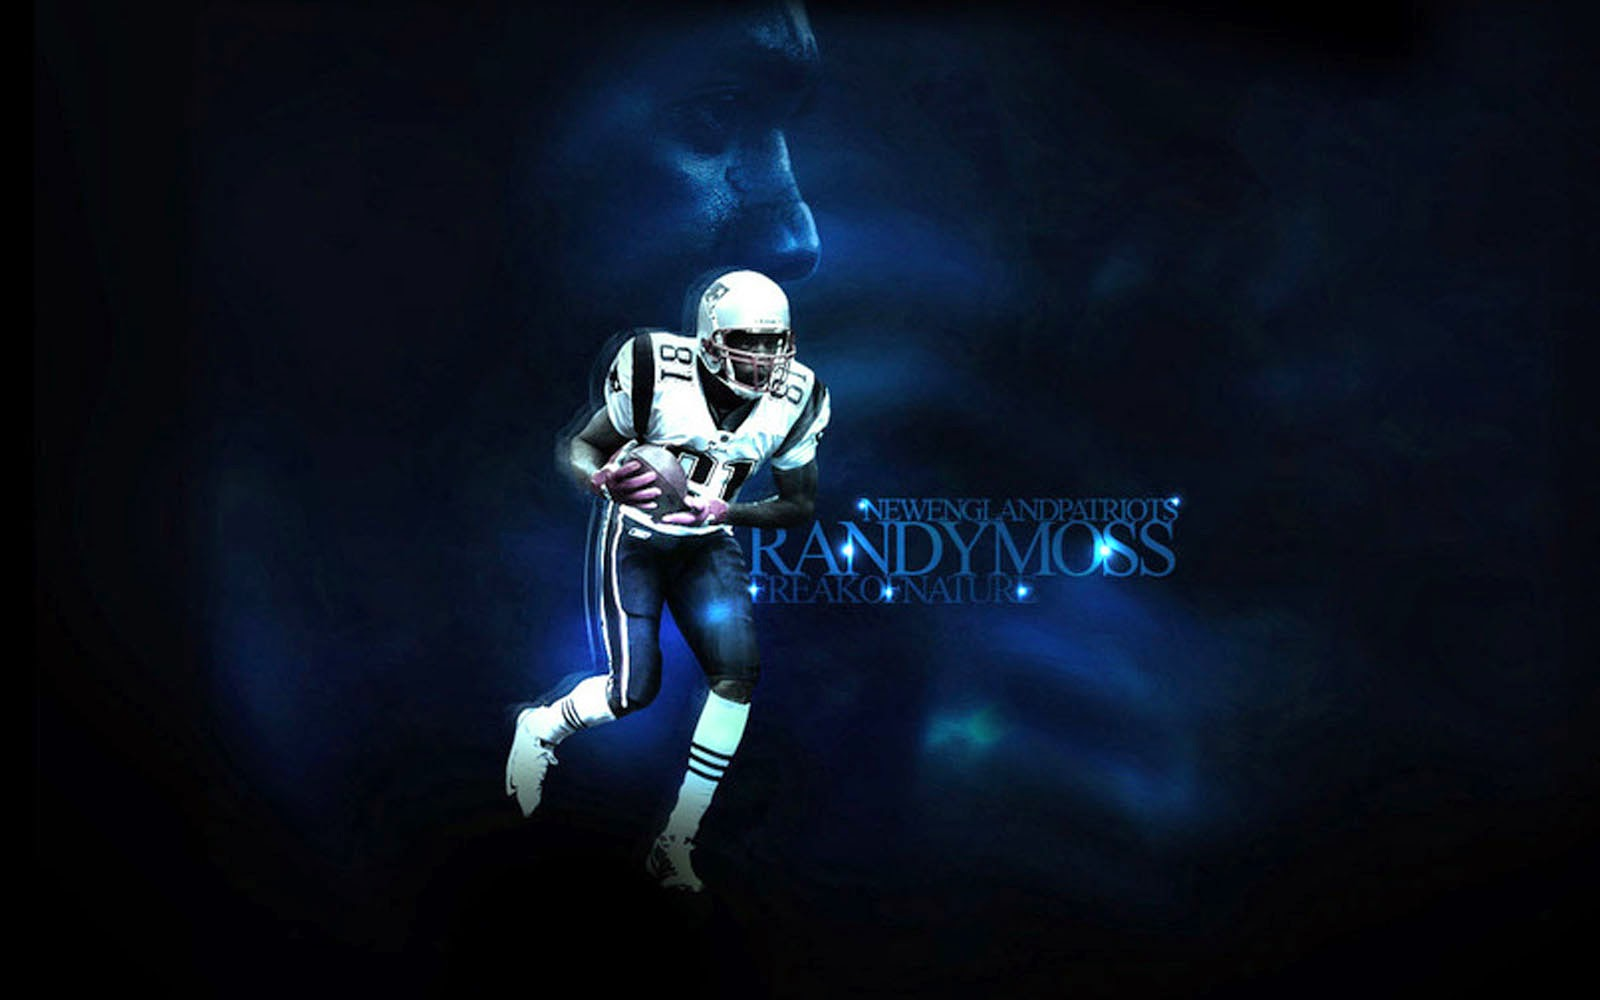 wallpapers: American Football Player Randy Moss Wallpapers